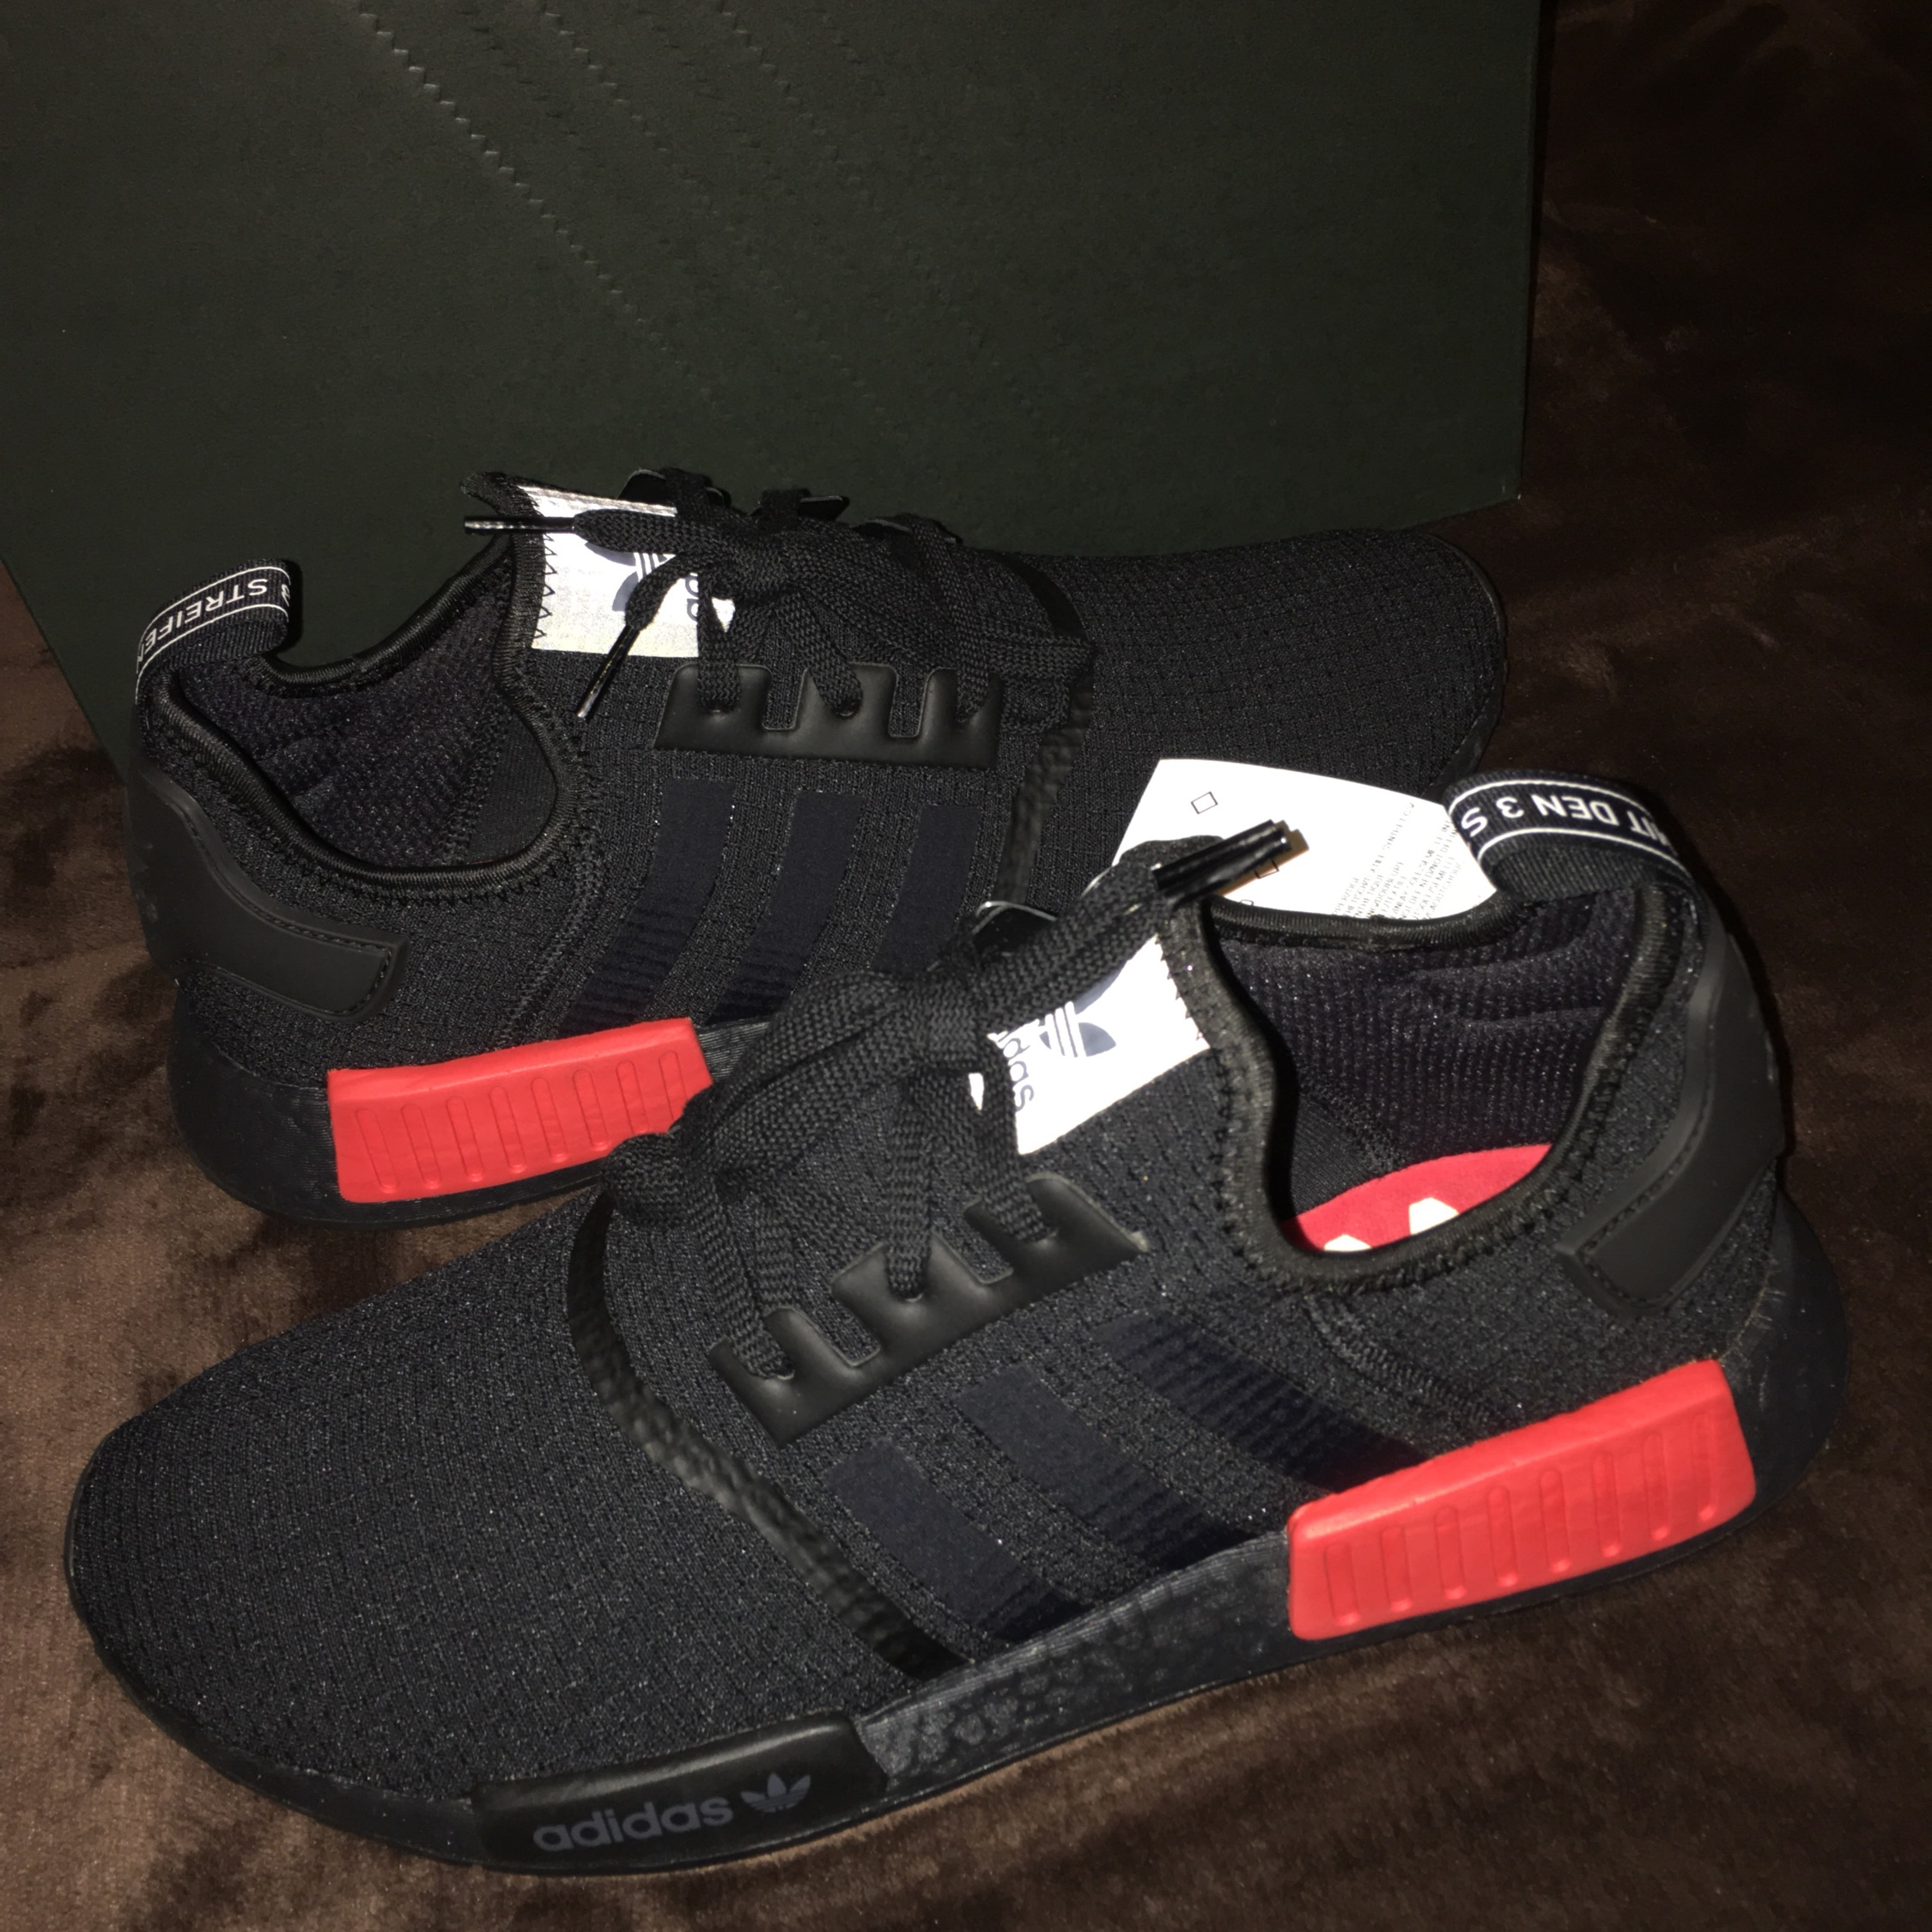 new product 50637 57b21 Adidas Nmd R1 Core Black Lush Red